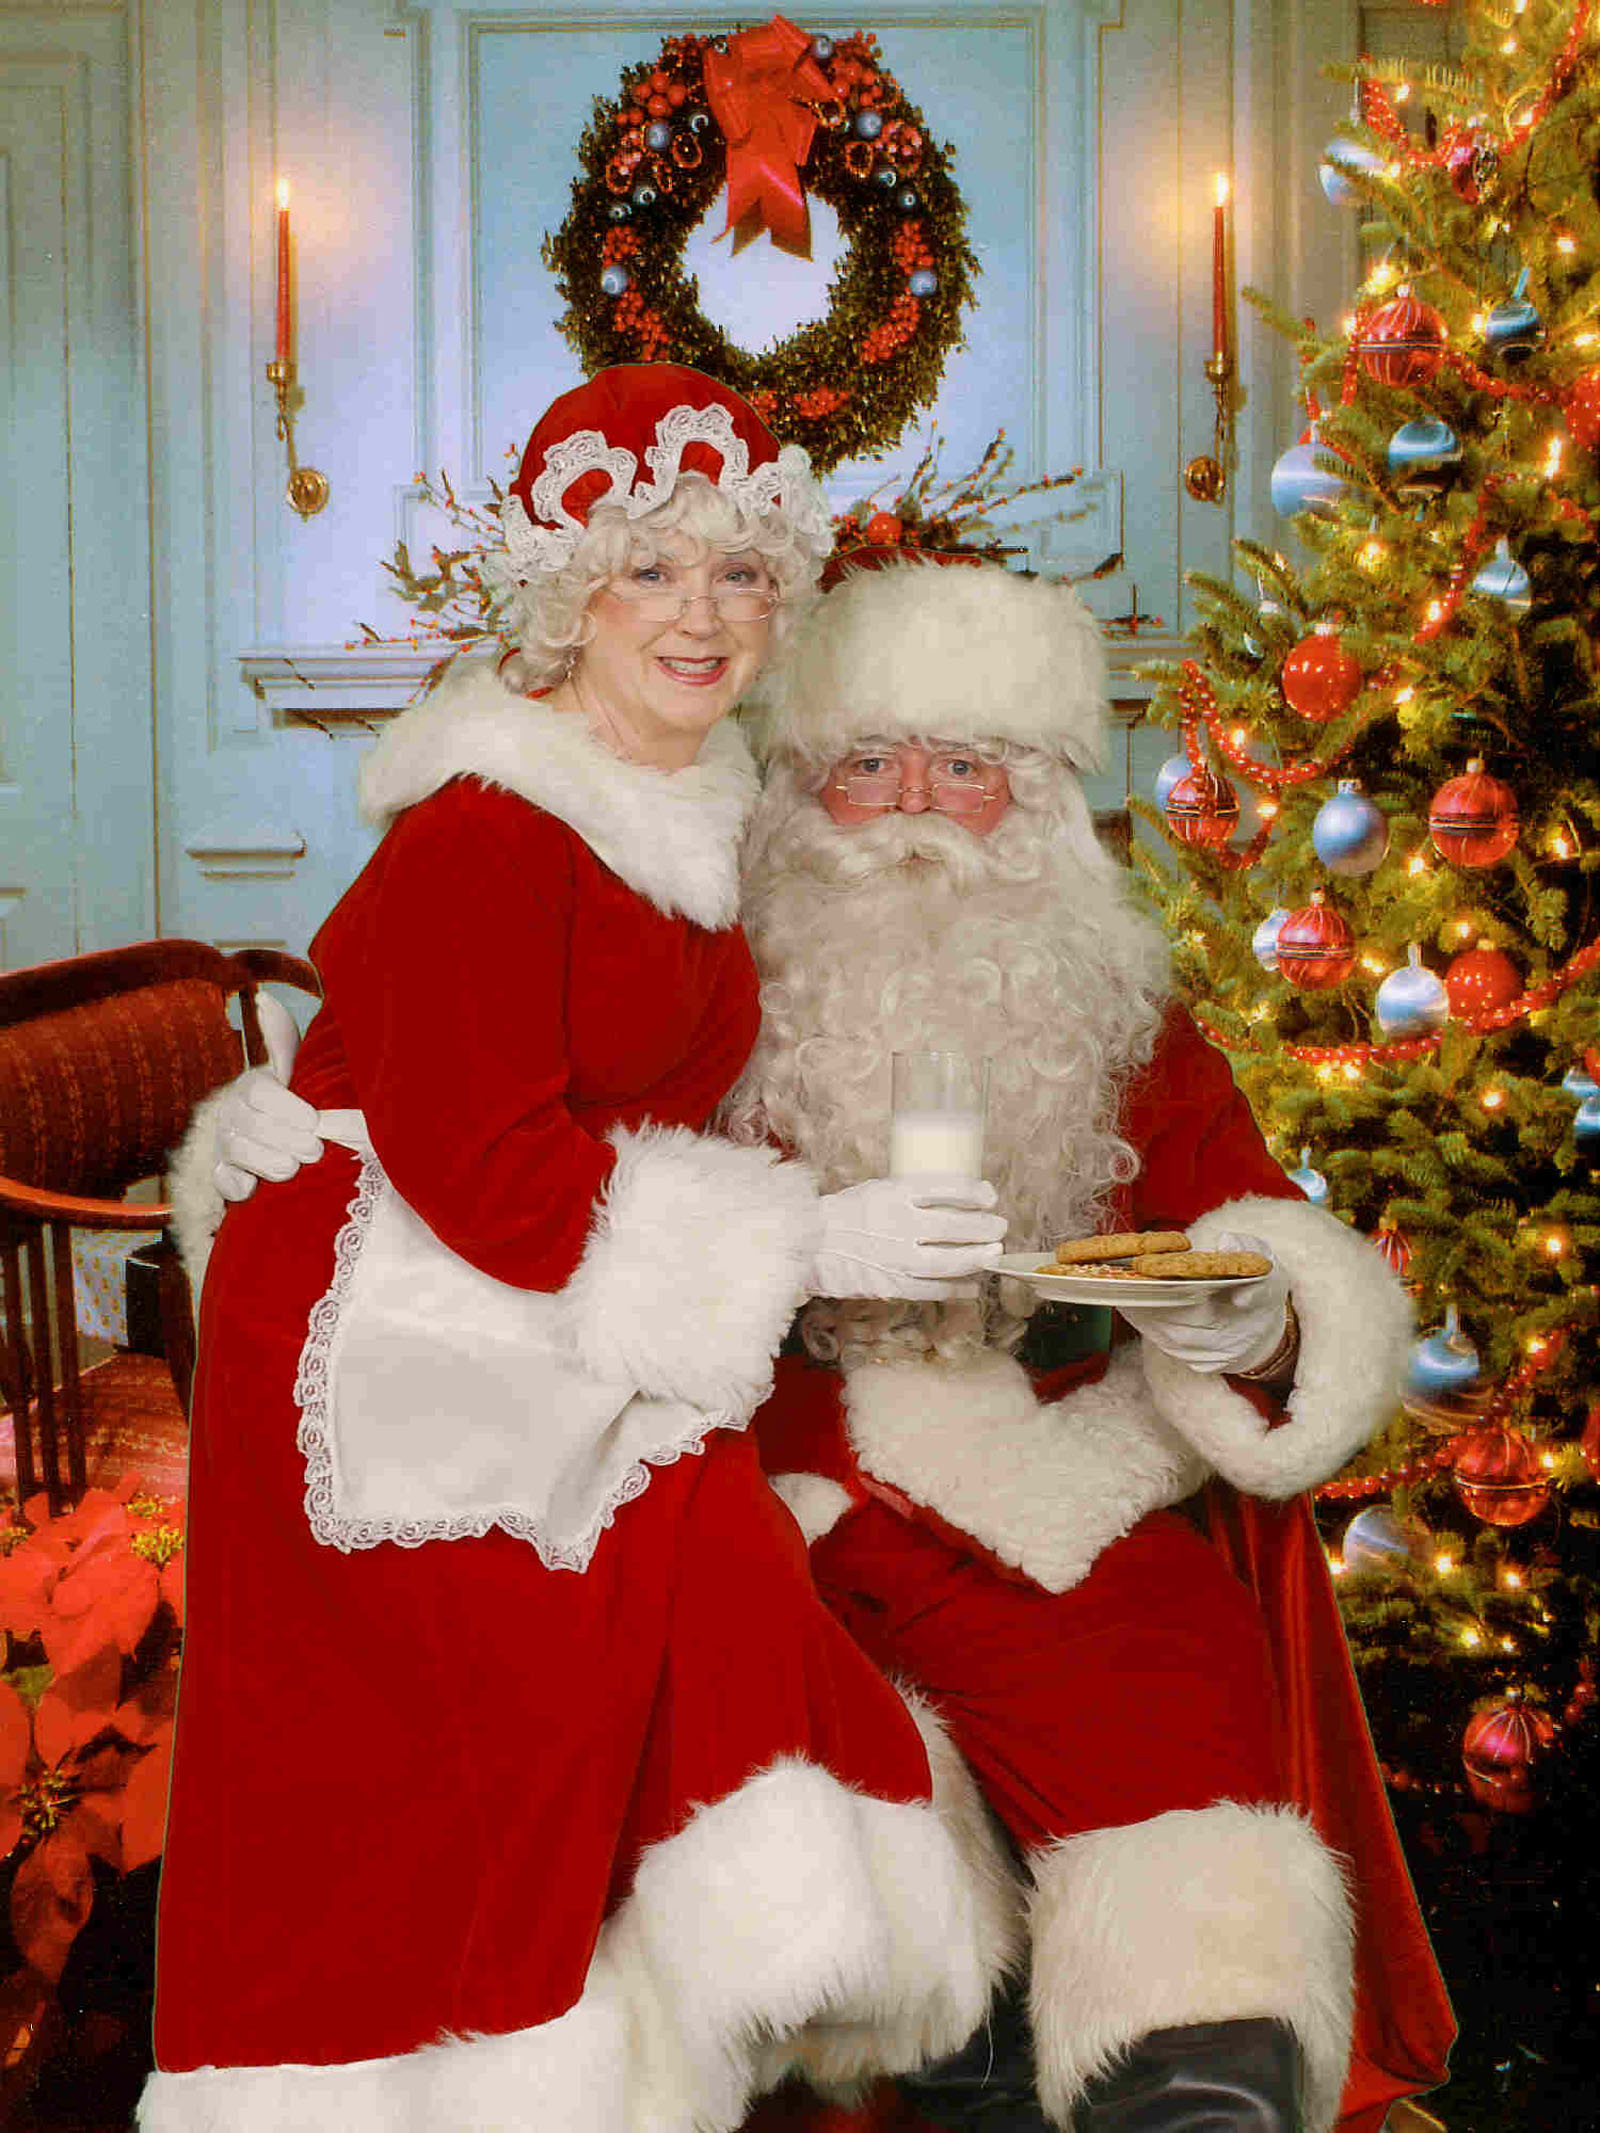 Mr. and Mrs. Claus happy together 48628